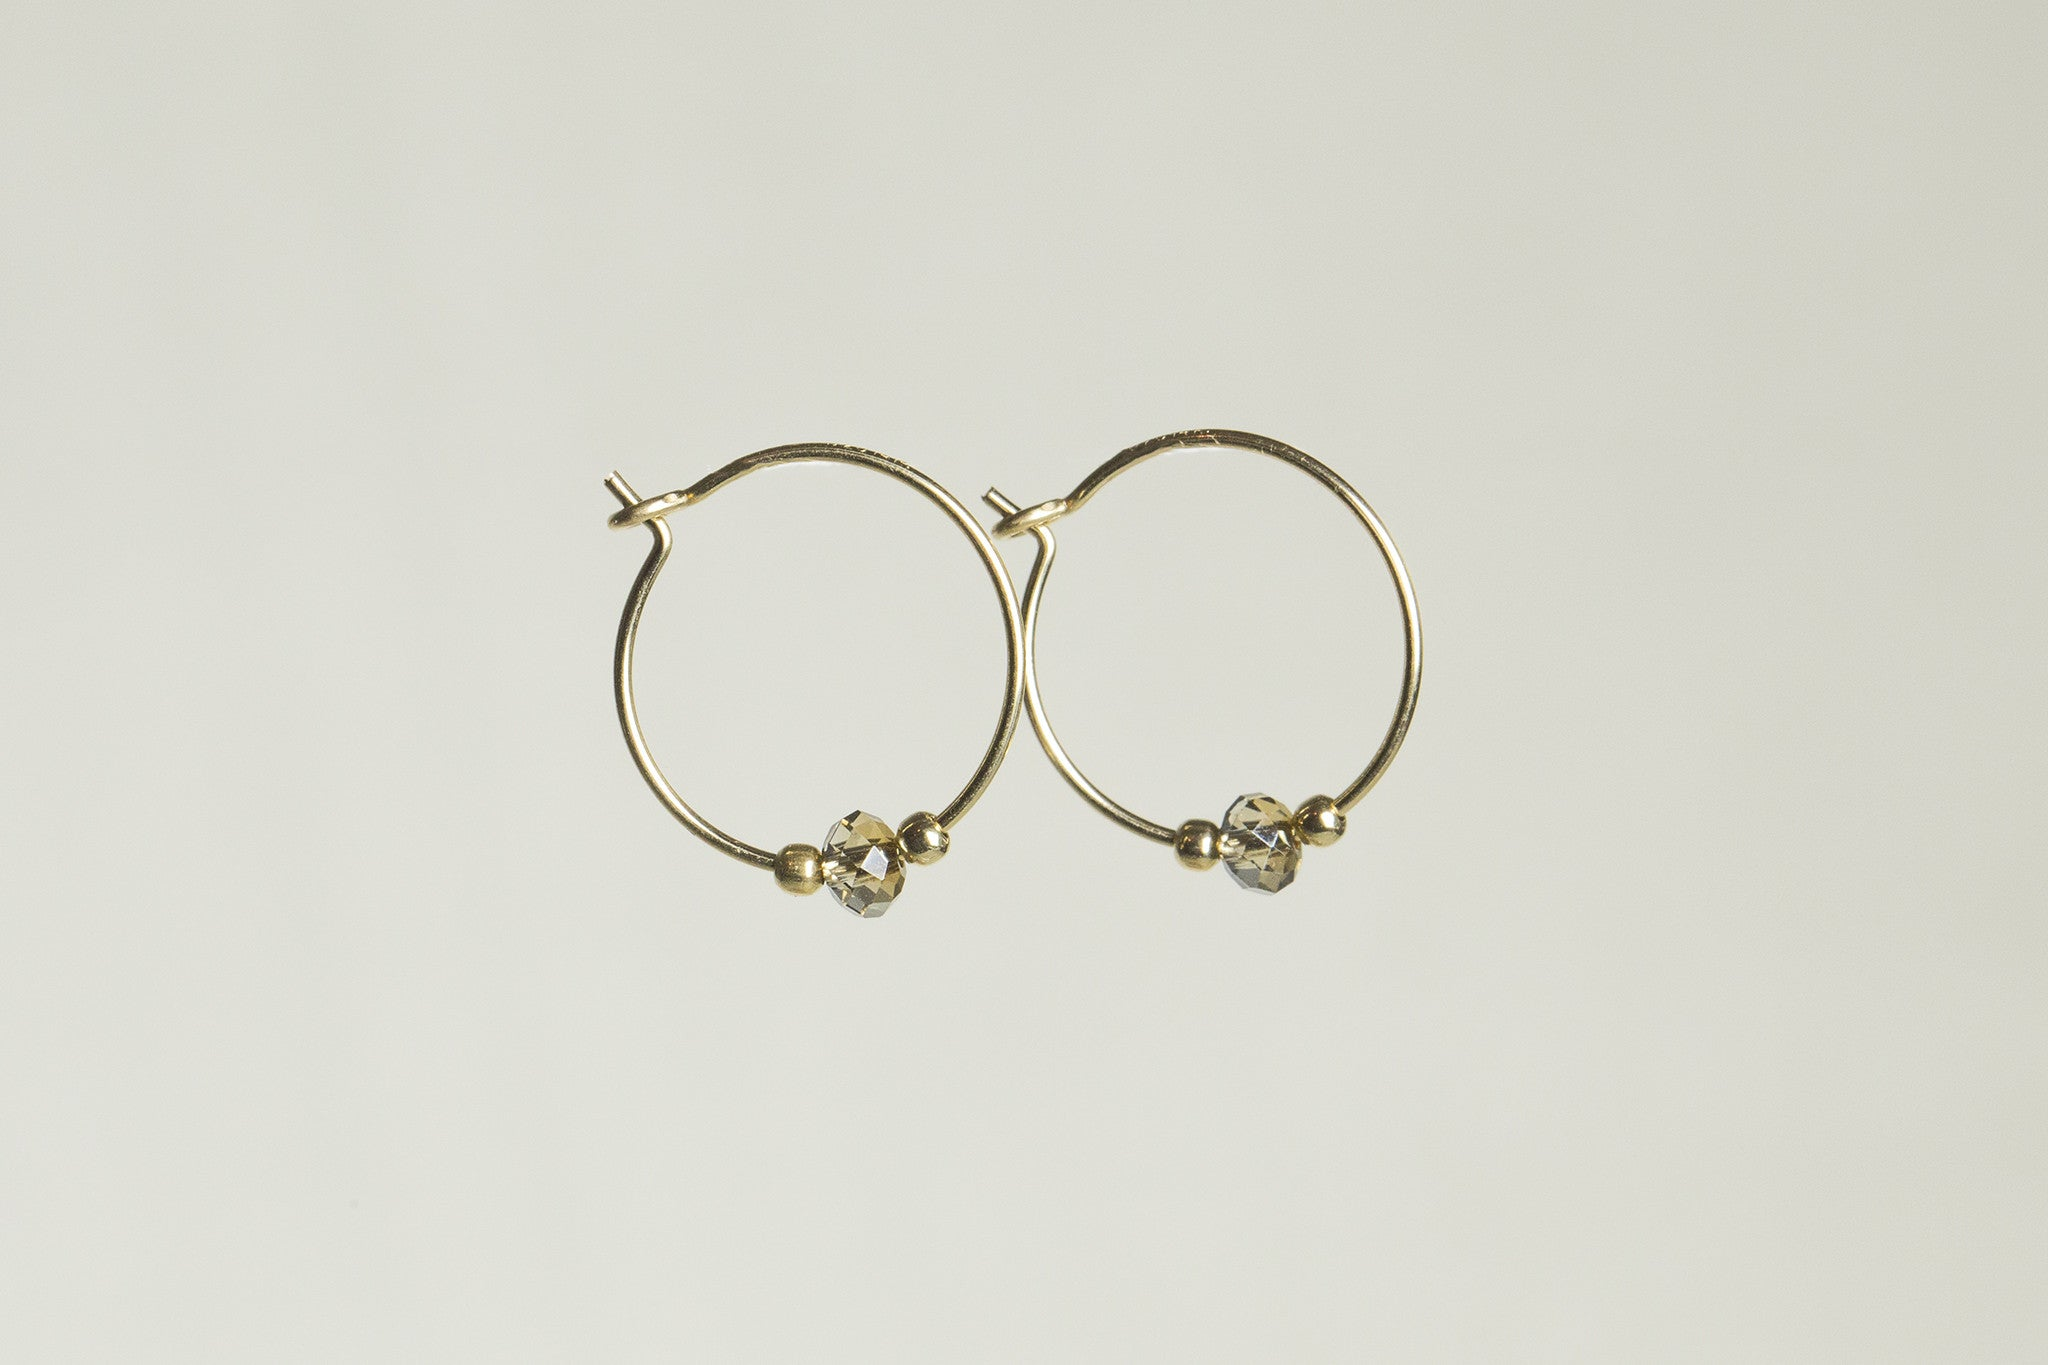 delicate hoops suitable for any age!